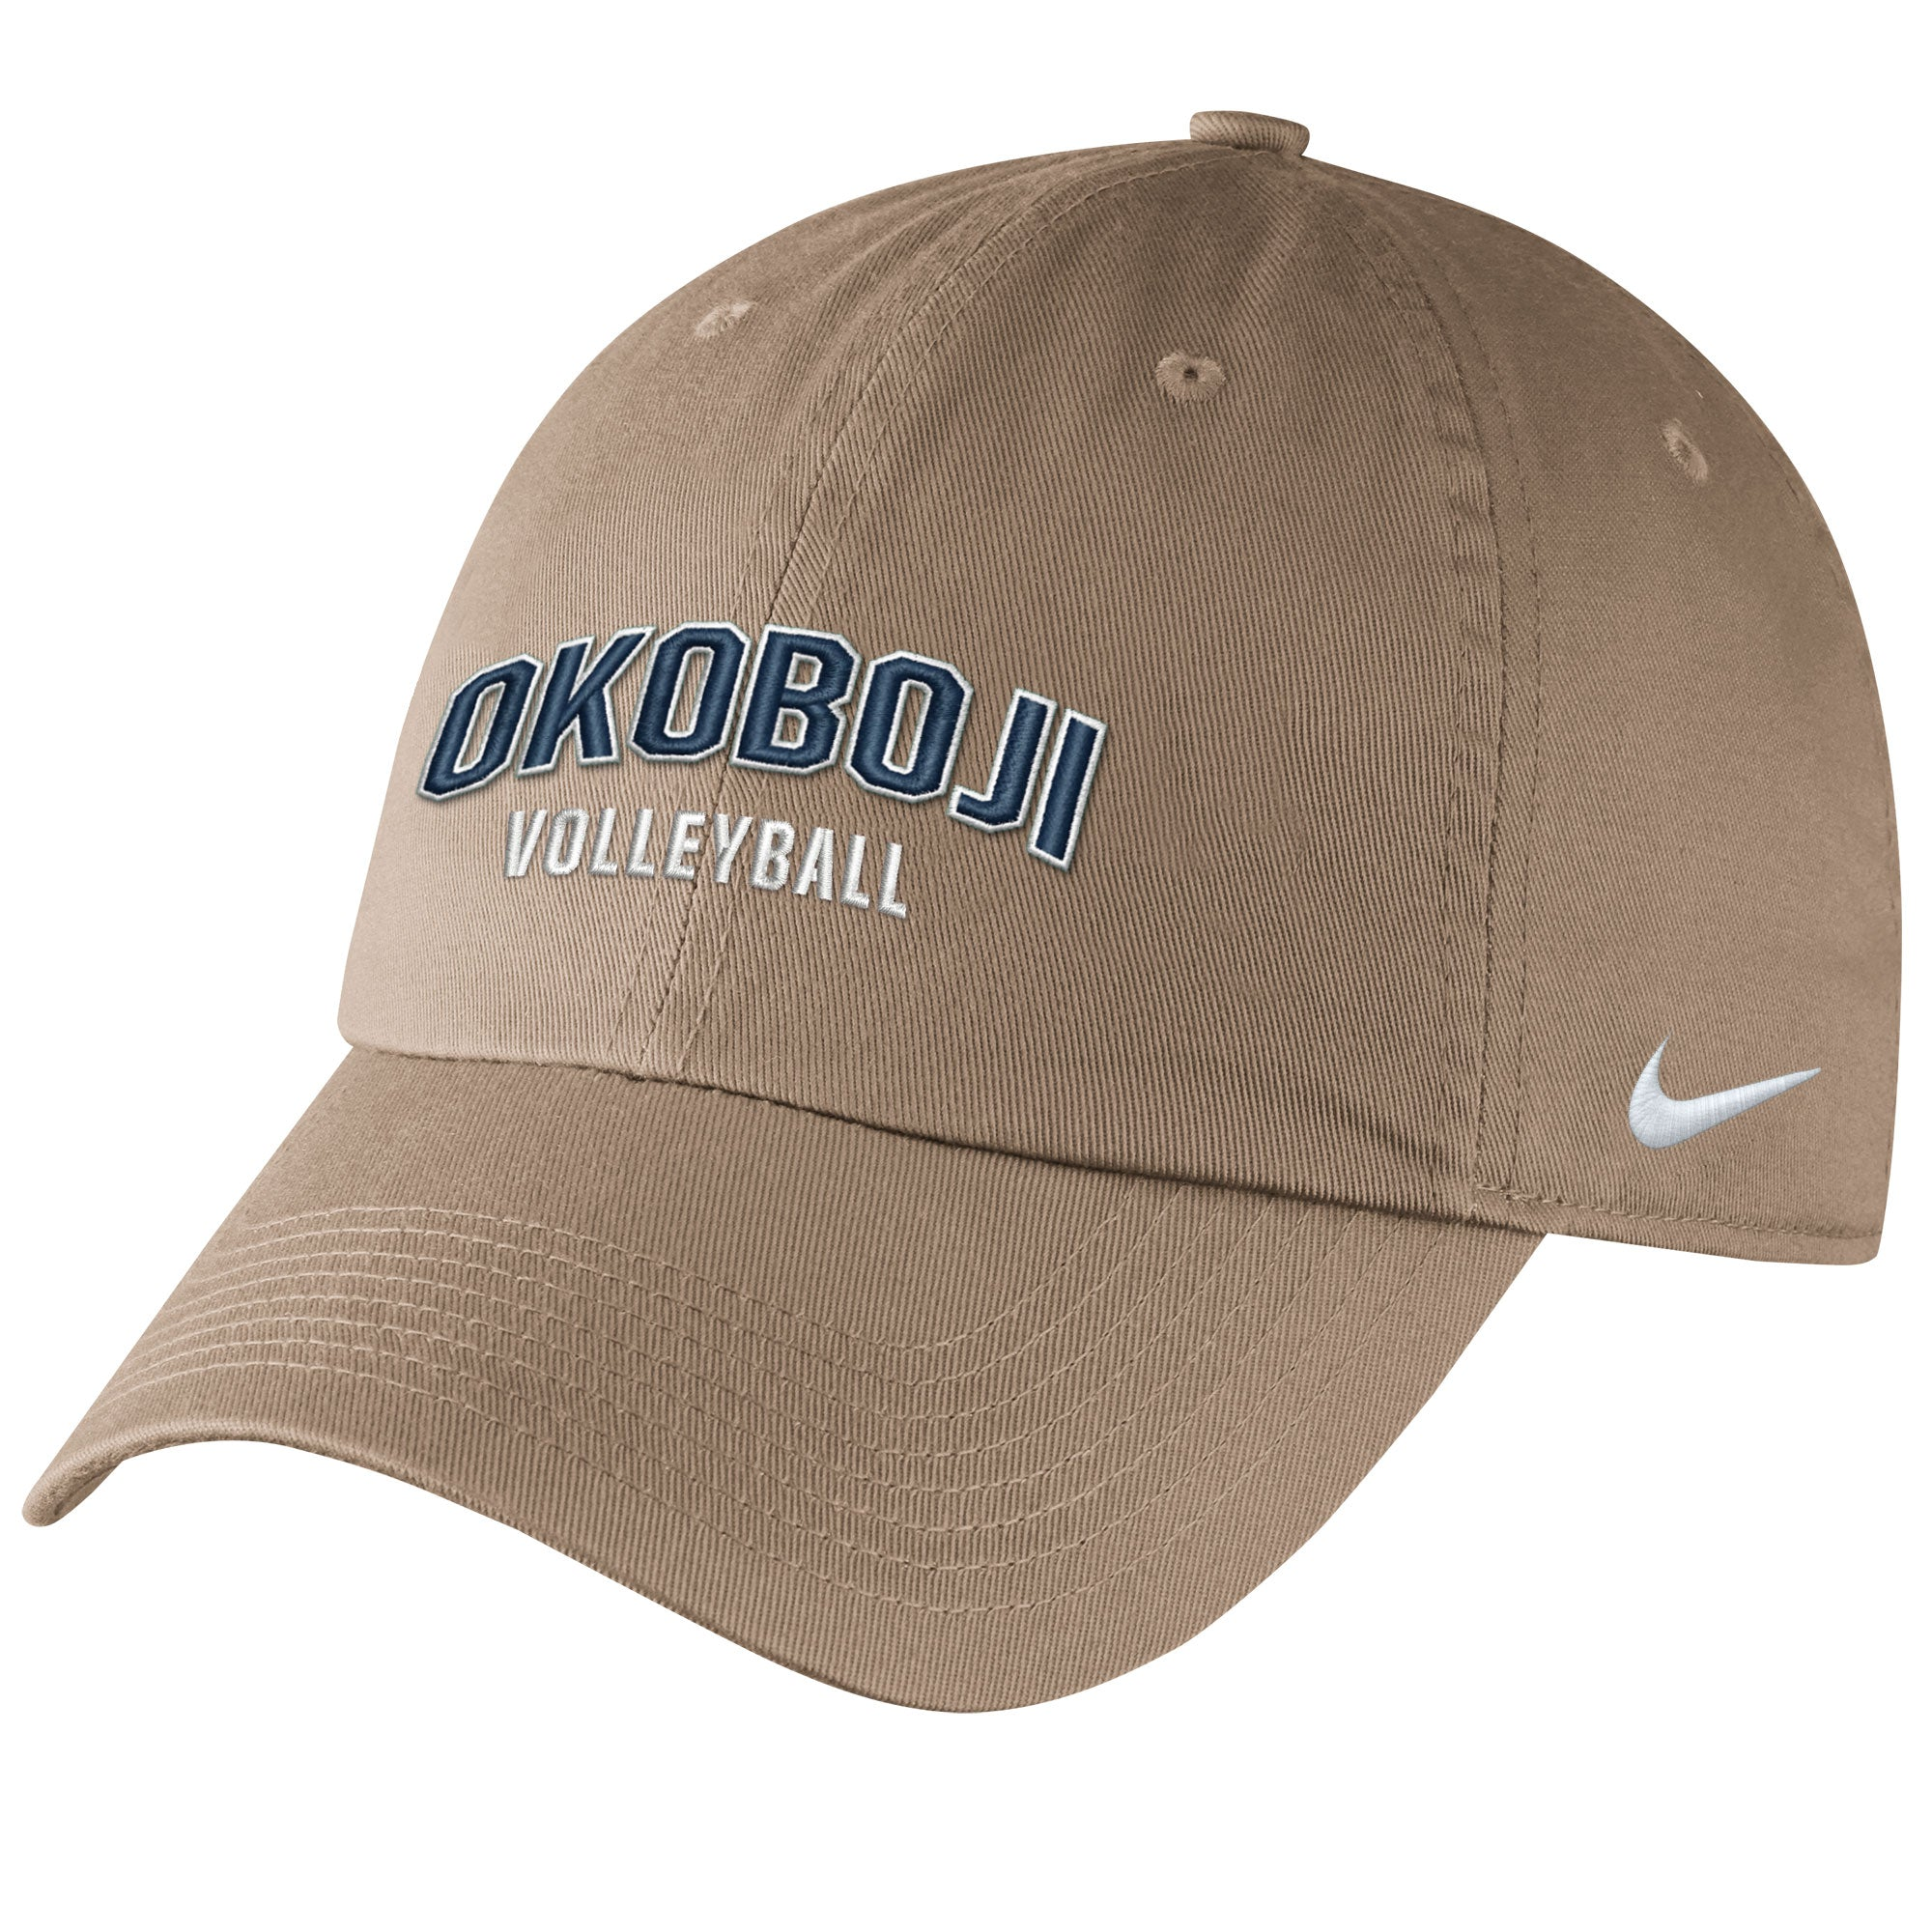 Okoboji Khaki Campus Cap - VOLLEYBALL